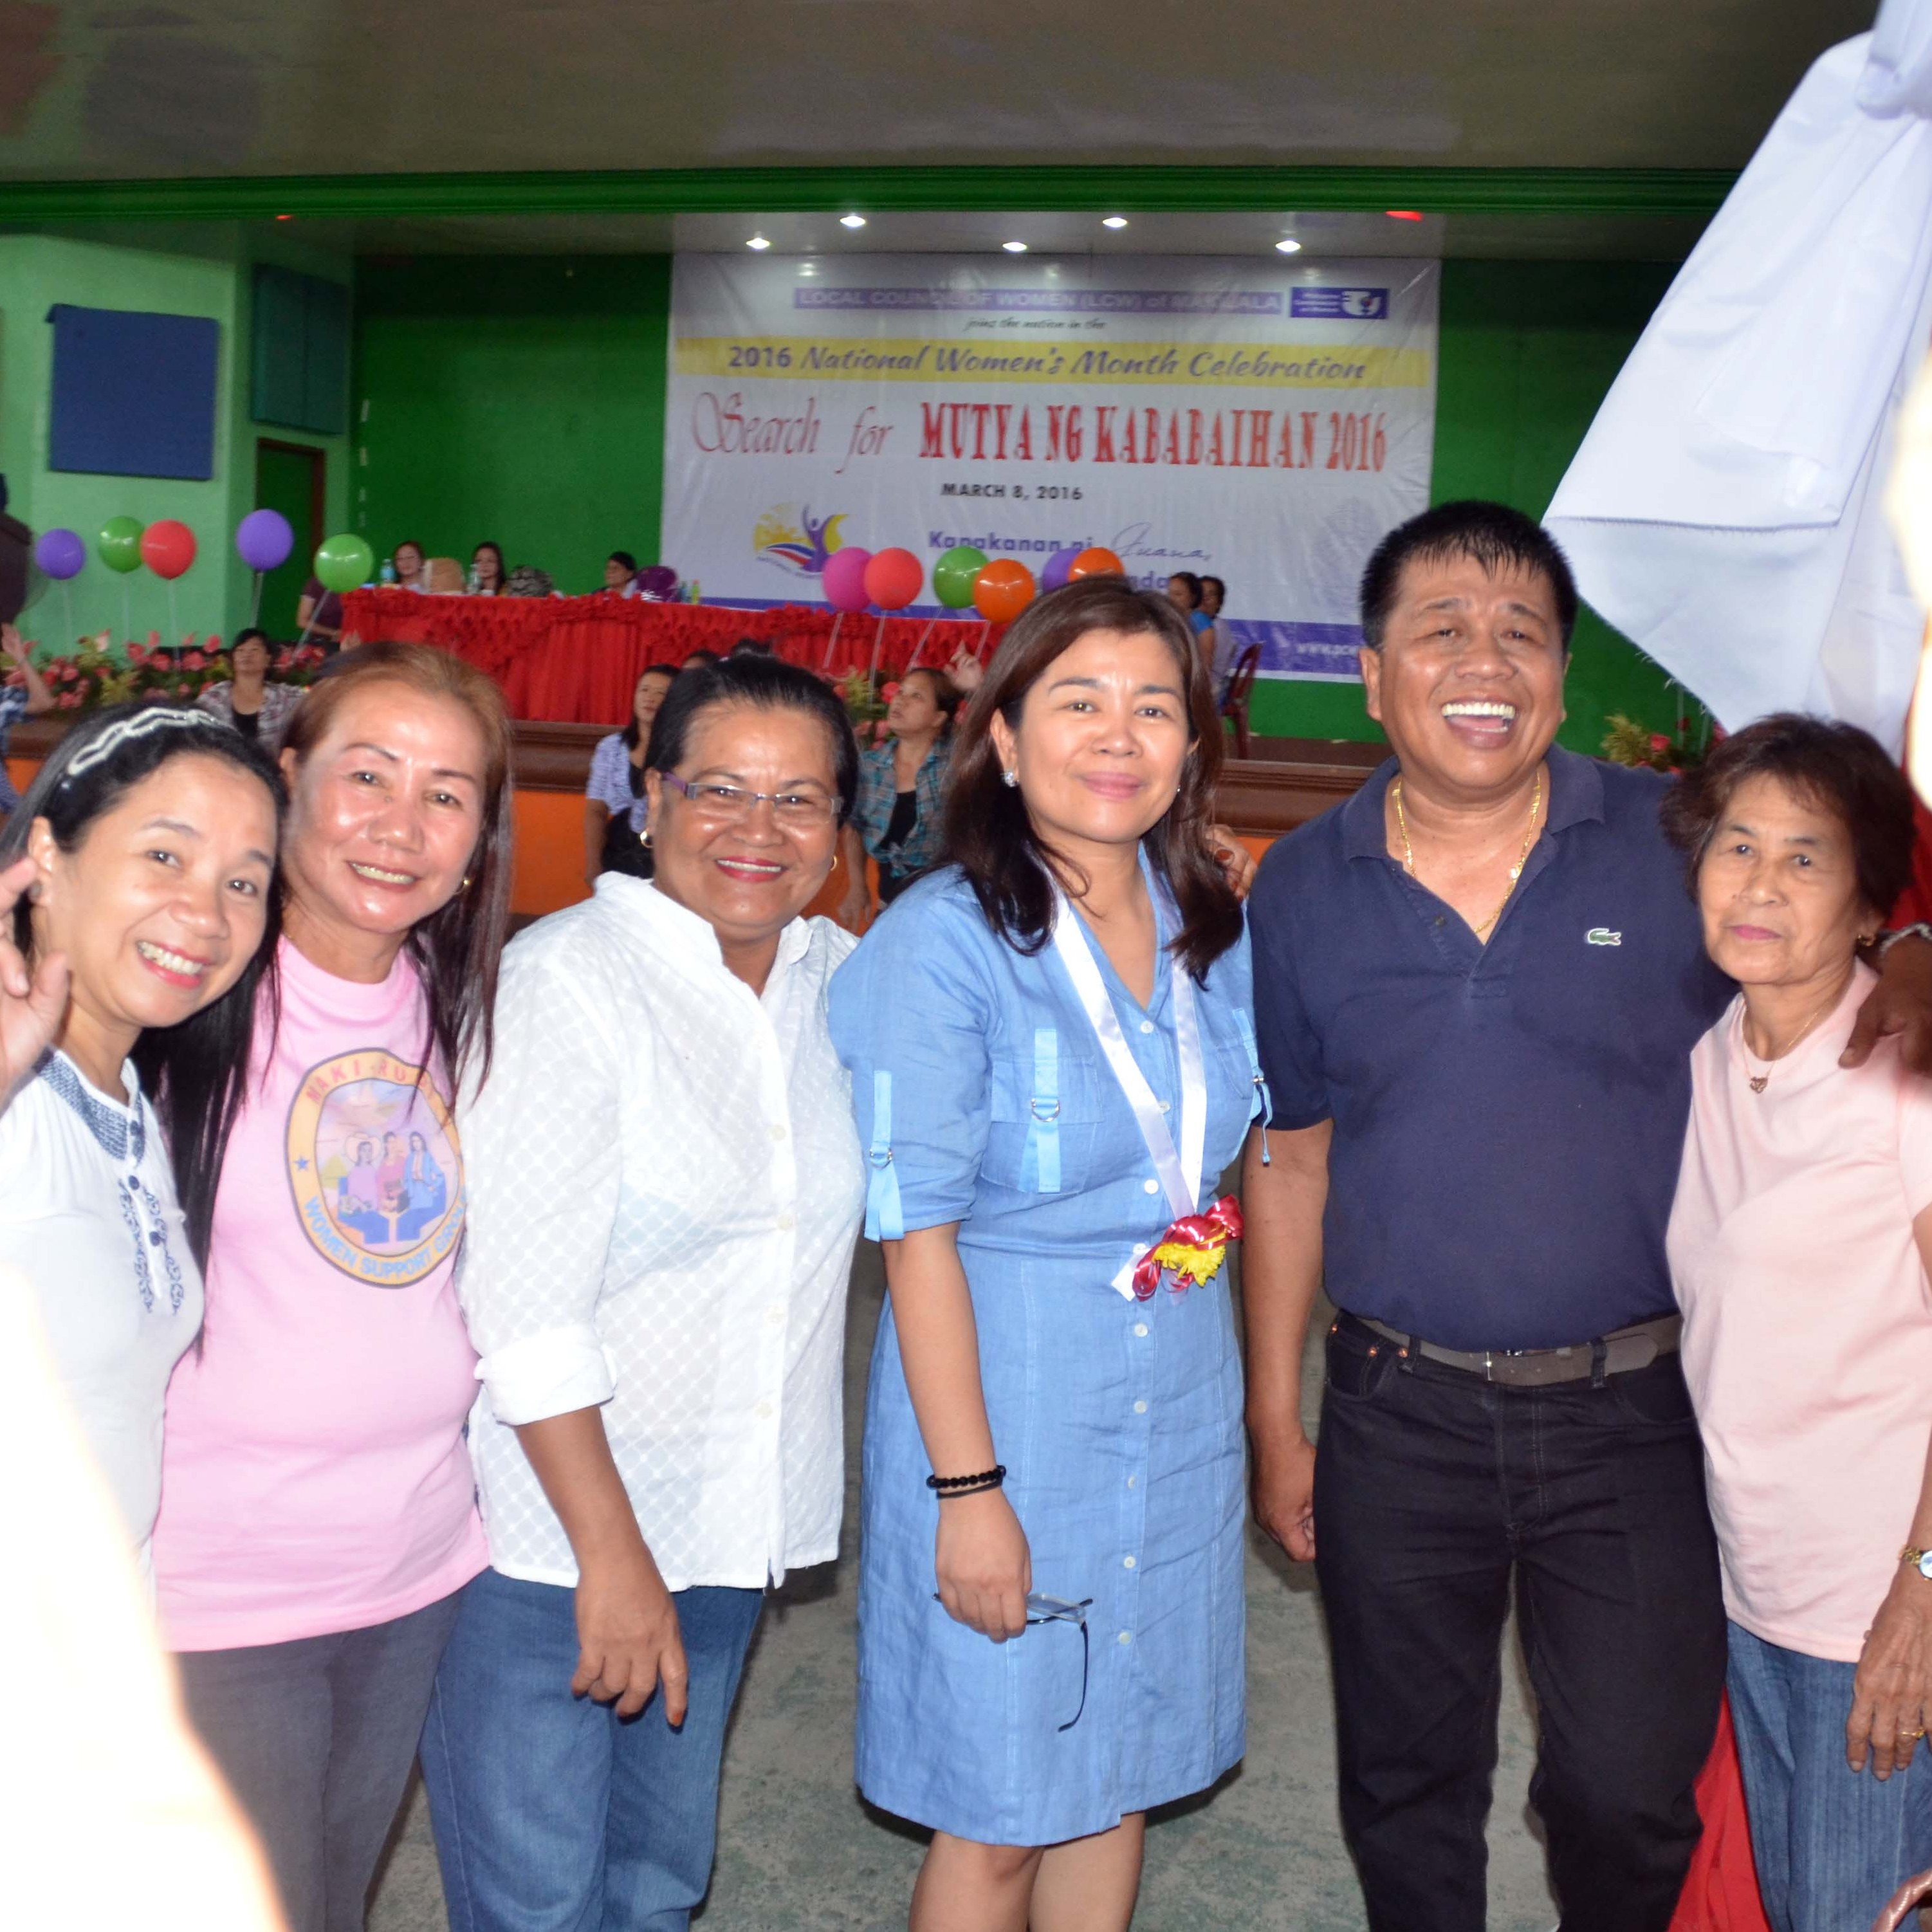 """North Cotabato Gov Emmylou """"Lala"""" J. Taliño-Mendoza with Makilala Mayor Rudy Caoagdan during the opening of the 2016 National Women's Month Celebration of Makilala."""